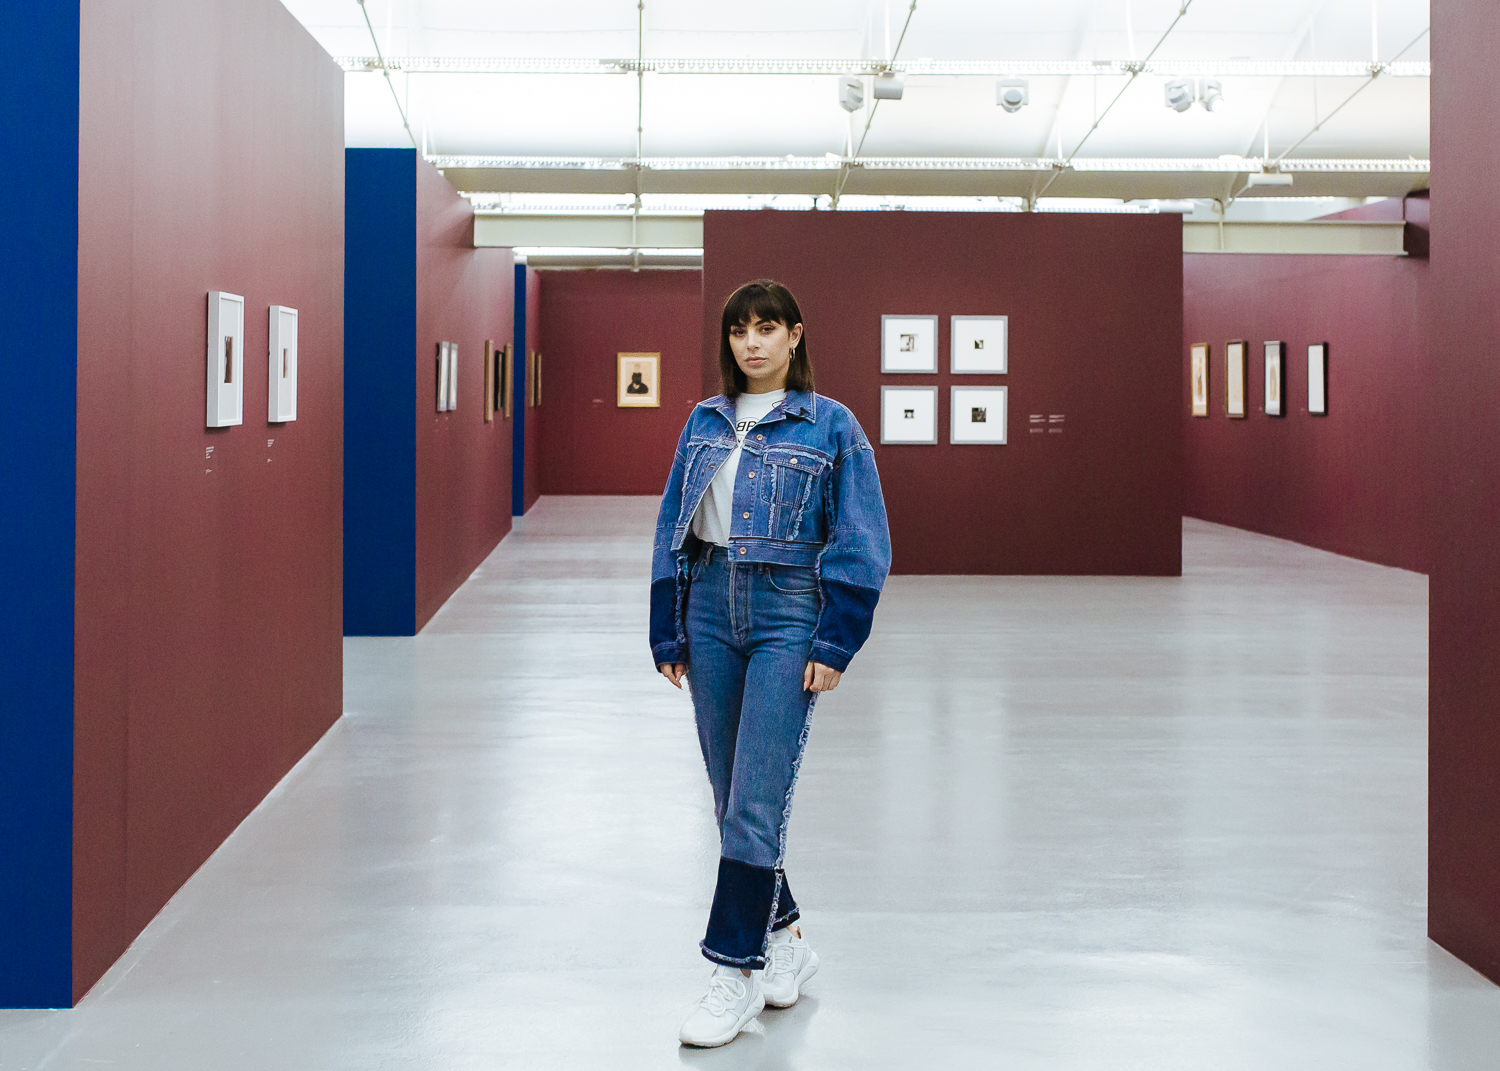 """Charli XCX, Tate Liverpool. July 2018. - Charli XCX responds to the """"mother of the selfie"""" & depictions of the female form with an open, public conversation.Working in partnership with Tate Liverpool, RRUNEWS invited Charli to Liverpool to respond to the themes of """"Life in Motion: Egon Schiele/Francesca Woodman"""", an exhibition running at Tate Liverpool.Photography commissioned by RRUNEWS Liverpool."""